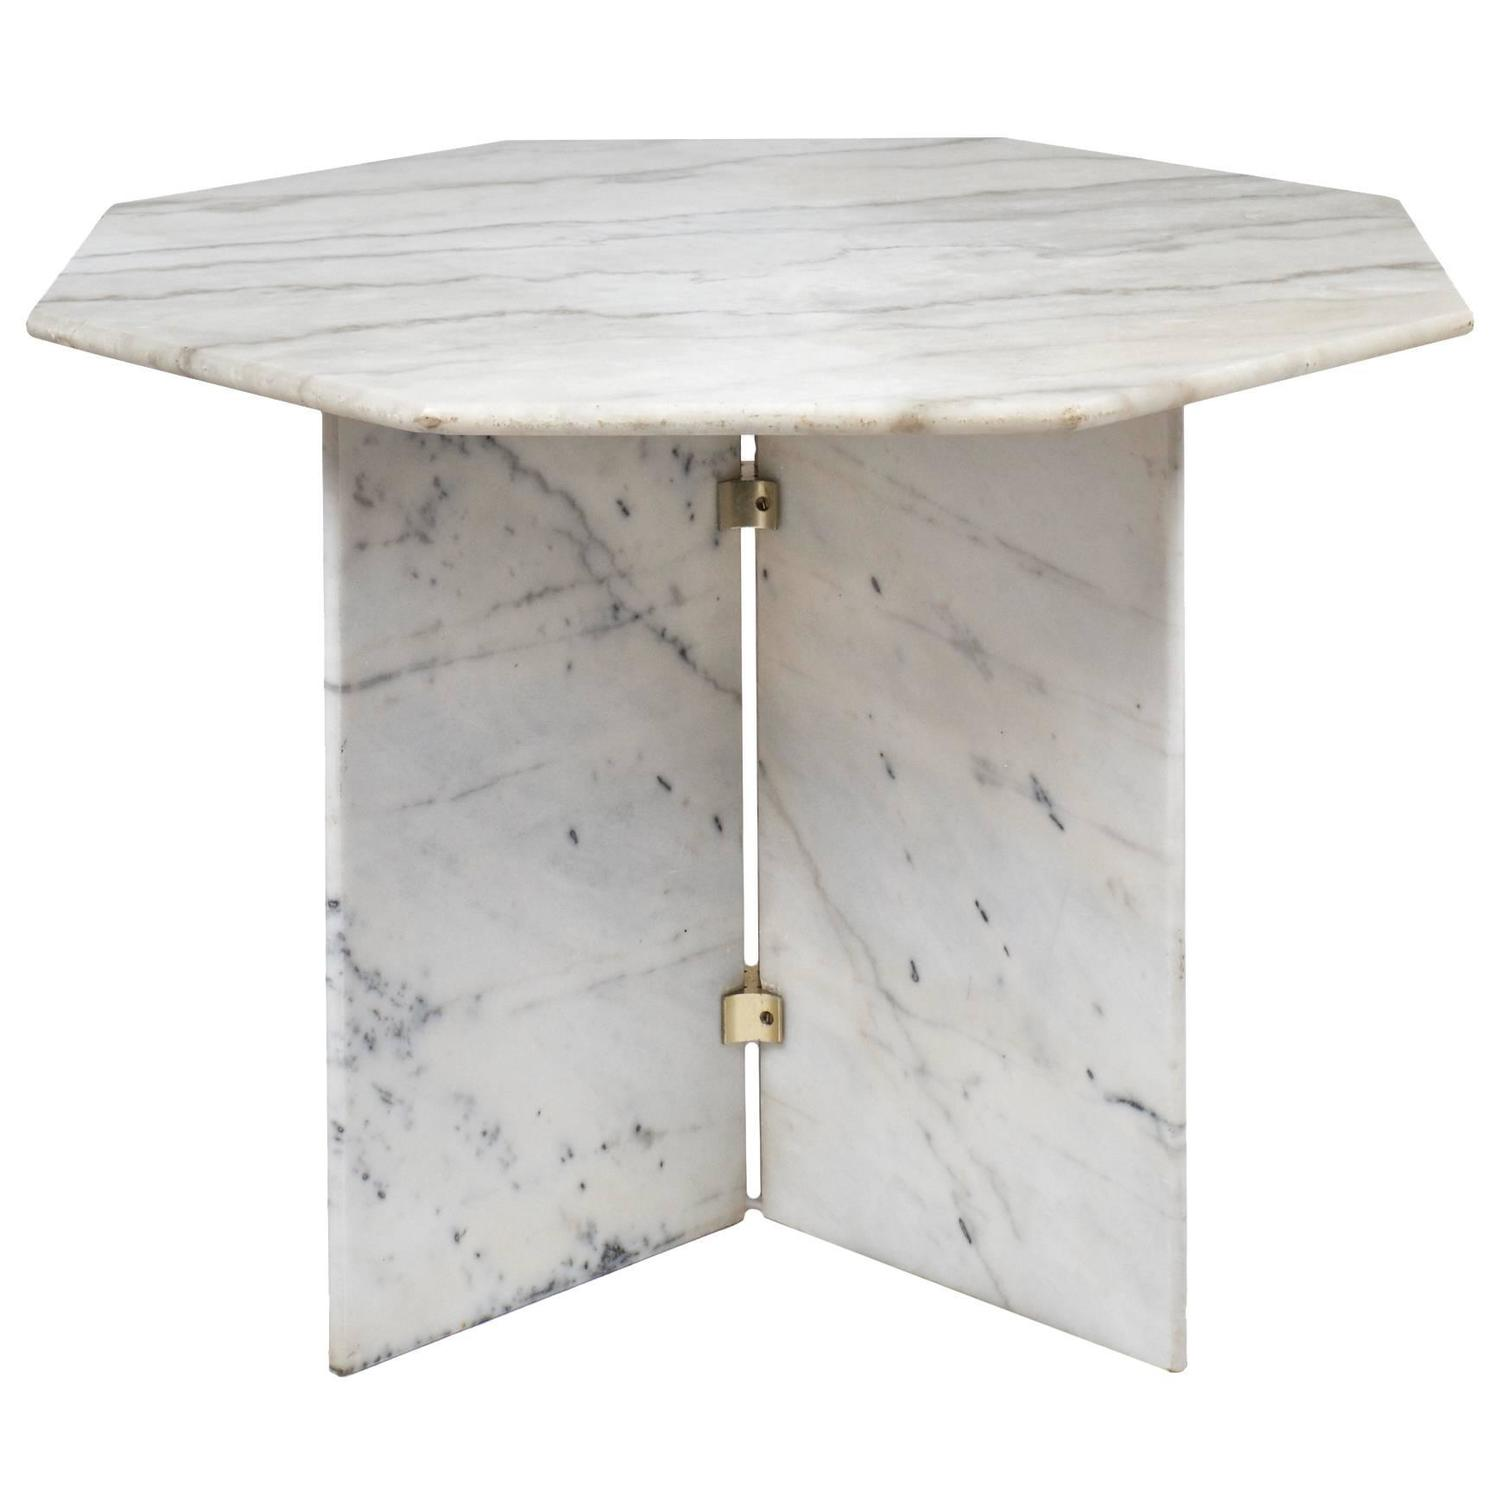 14E80 Vintage Solid Marble Dining Table E Org